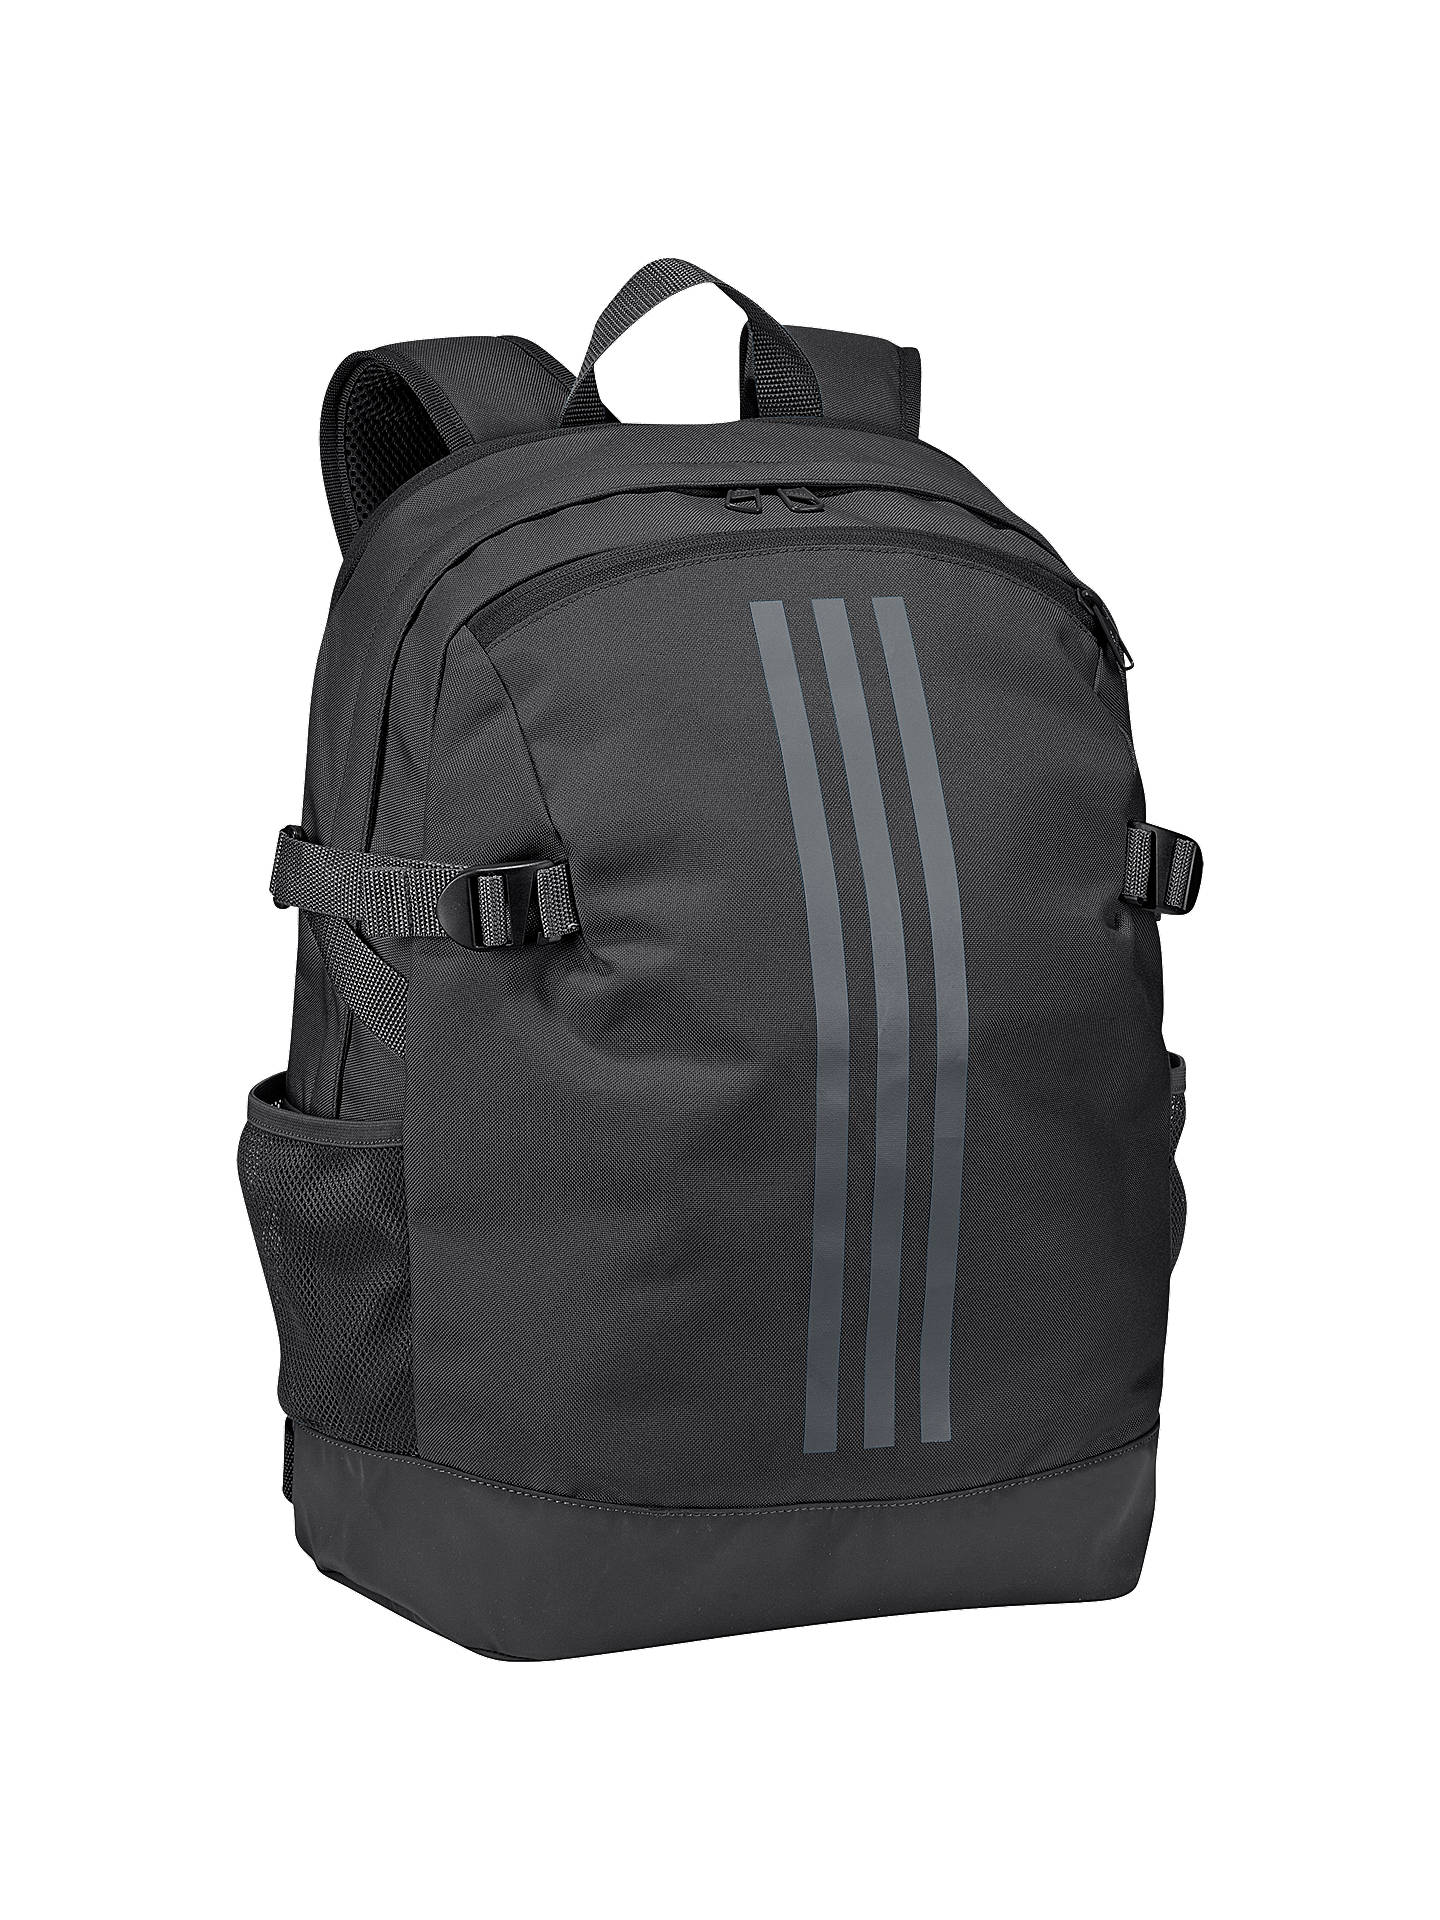 44bb0cbfb34 Buyadidas Power IV Backpack, Carbon Online at johnlewis.com